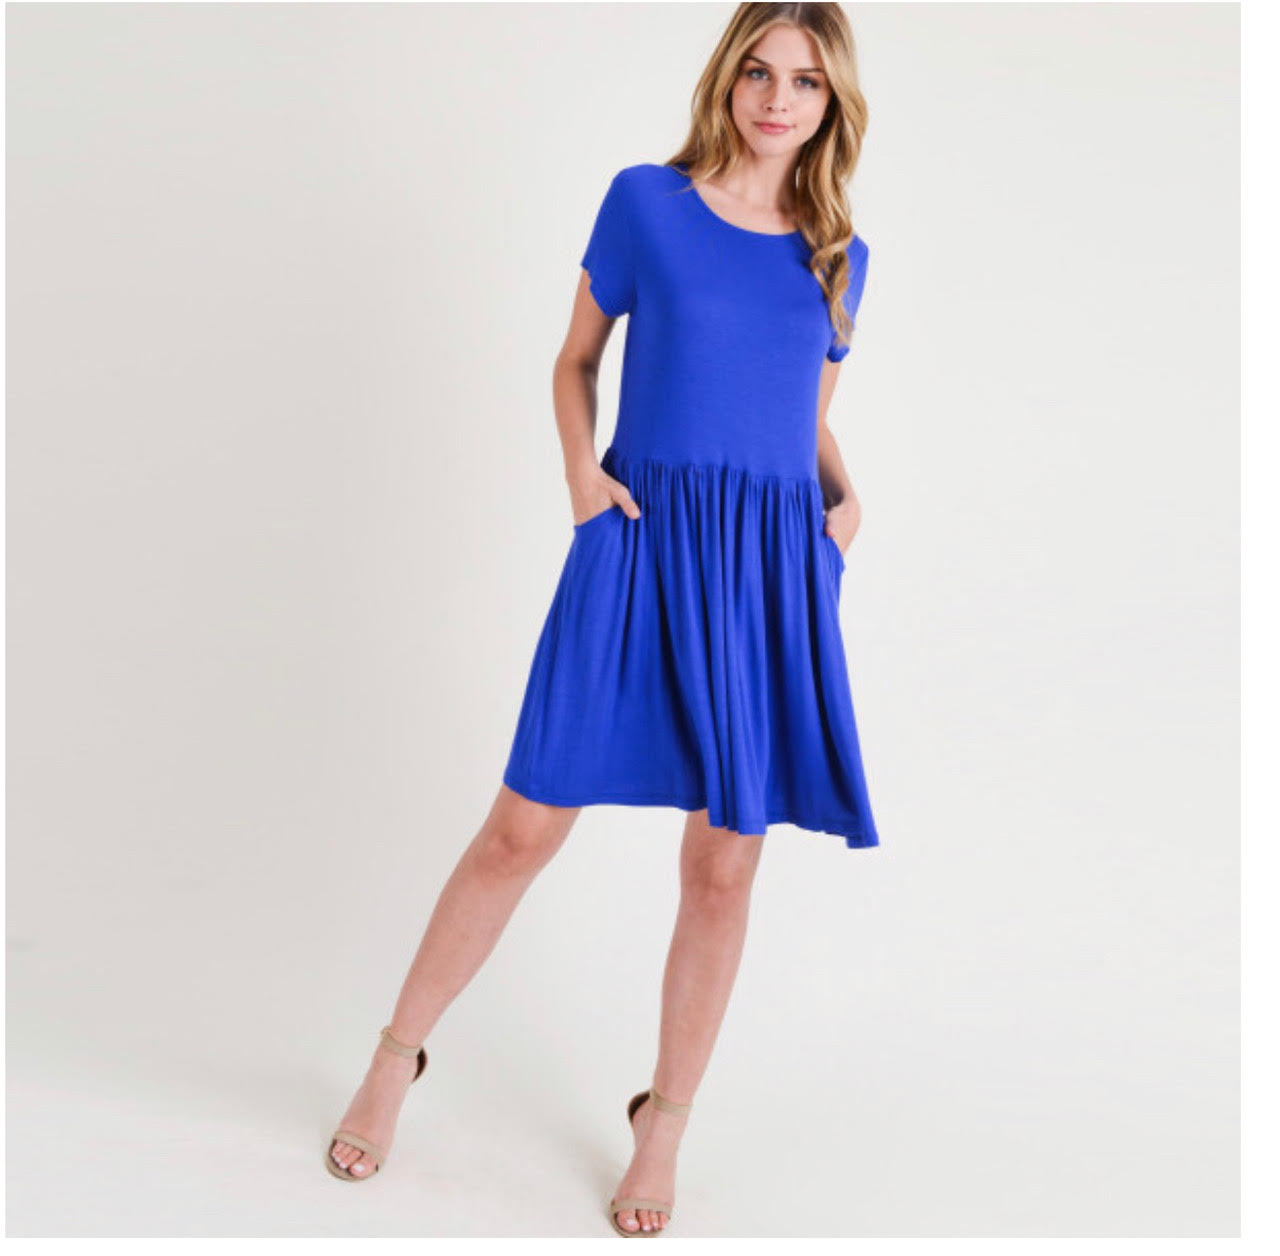 Royal Blue Short Sleeve Baby Doll Dress w/ Front Pockets